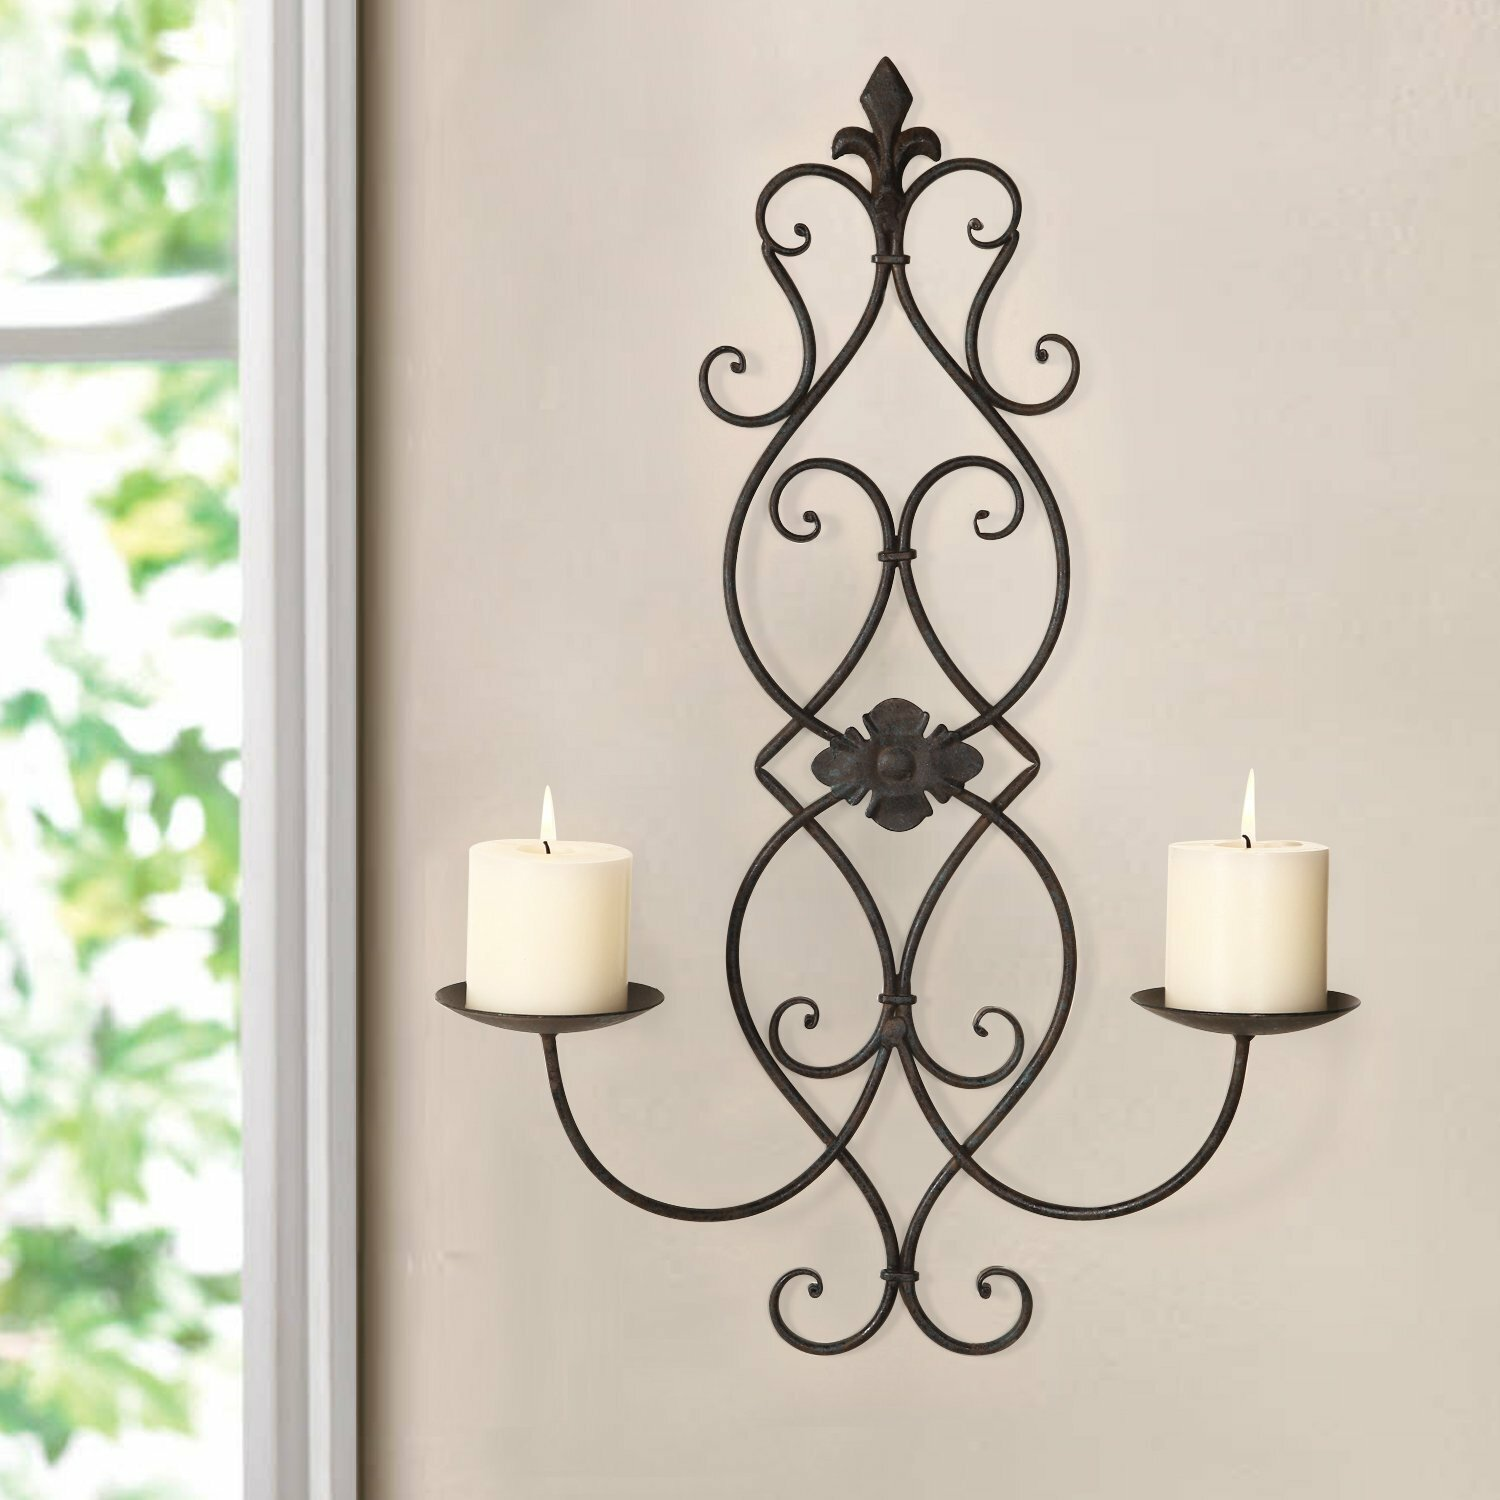 Iron Wall Sconce Candle Holder By Adeco Trading : Adeco Trading Iron Wall Sconce Candle Holder eBay